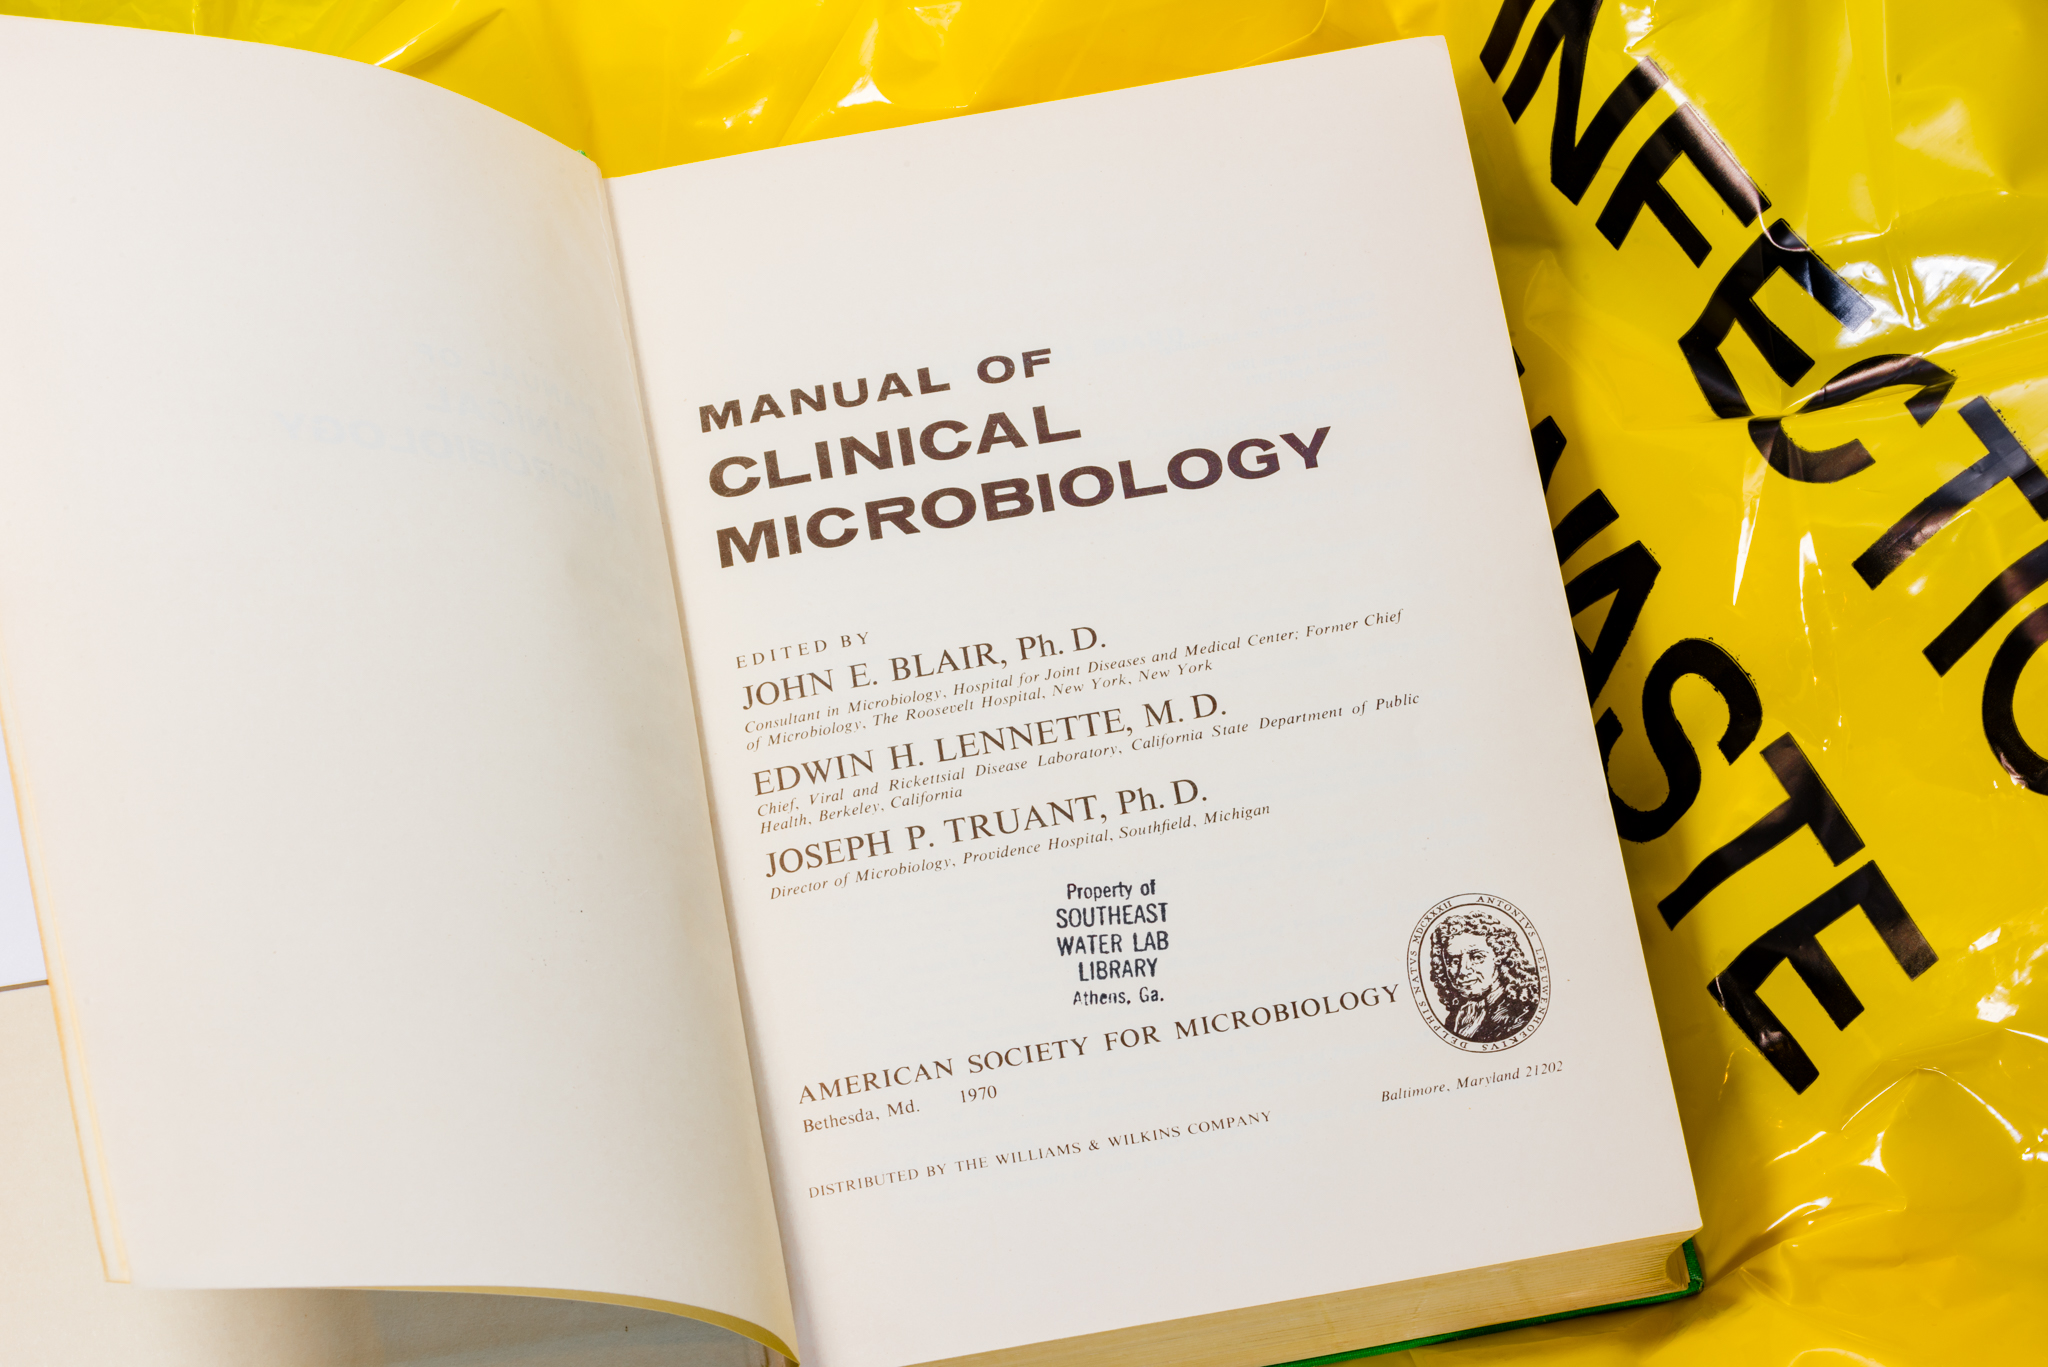 Manual of Clinical Microbiology First edition